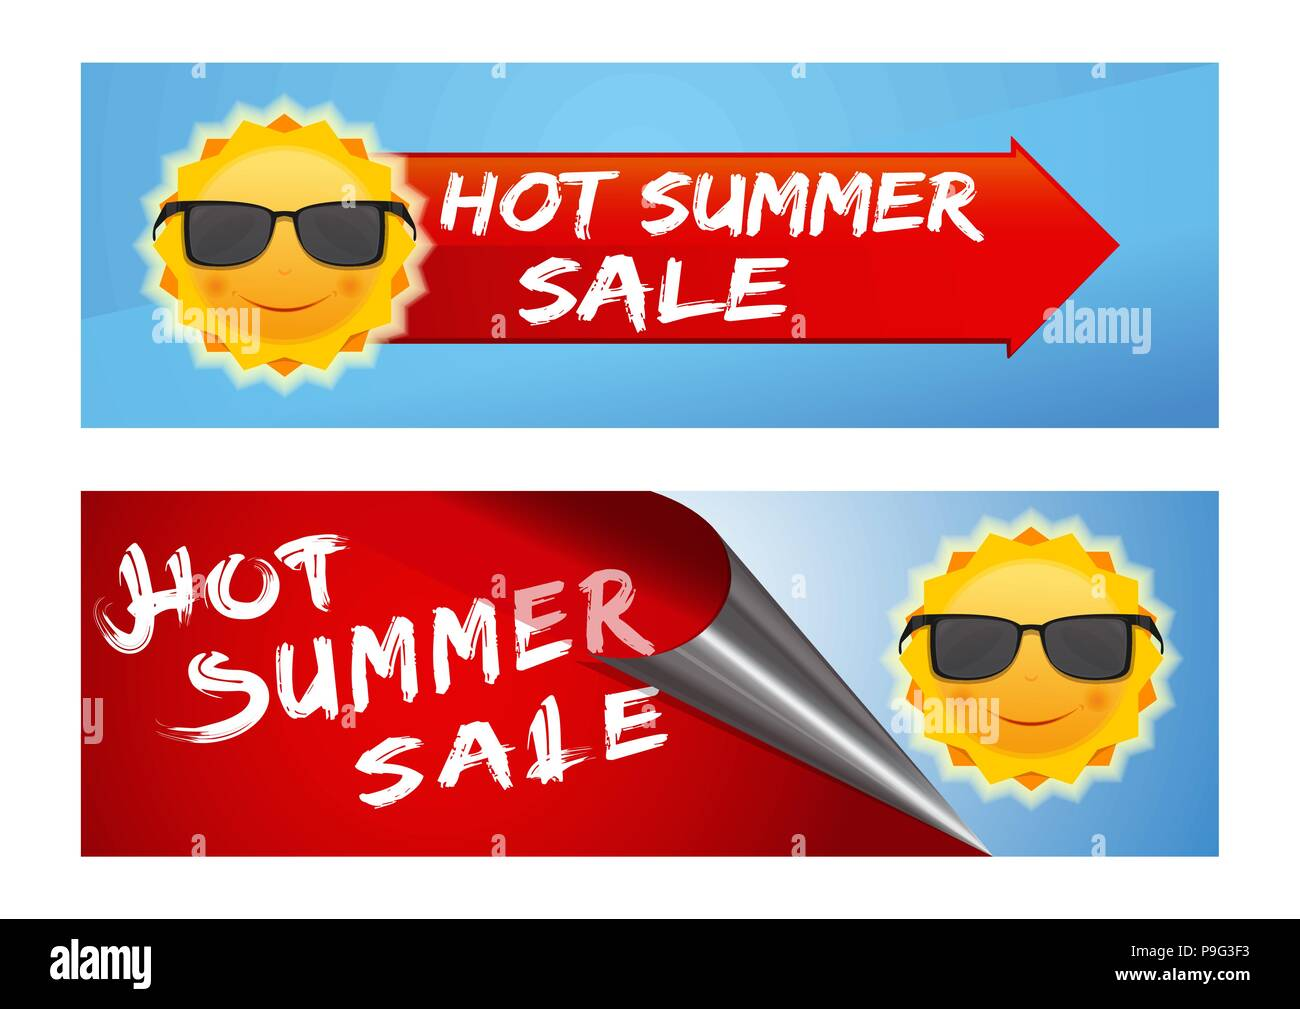 5286fae85cca Summer sale banners set. Colorful banners with a smiling sun in black  sunglasses and inscription